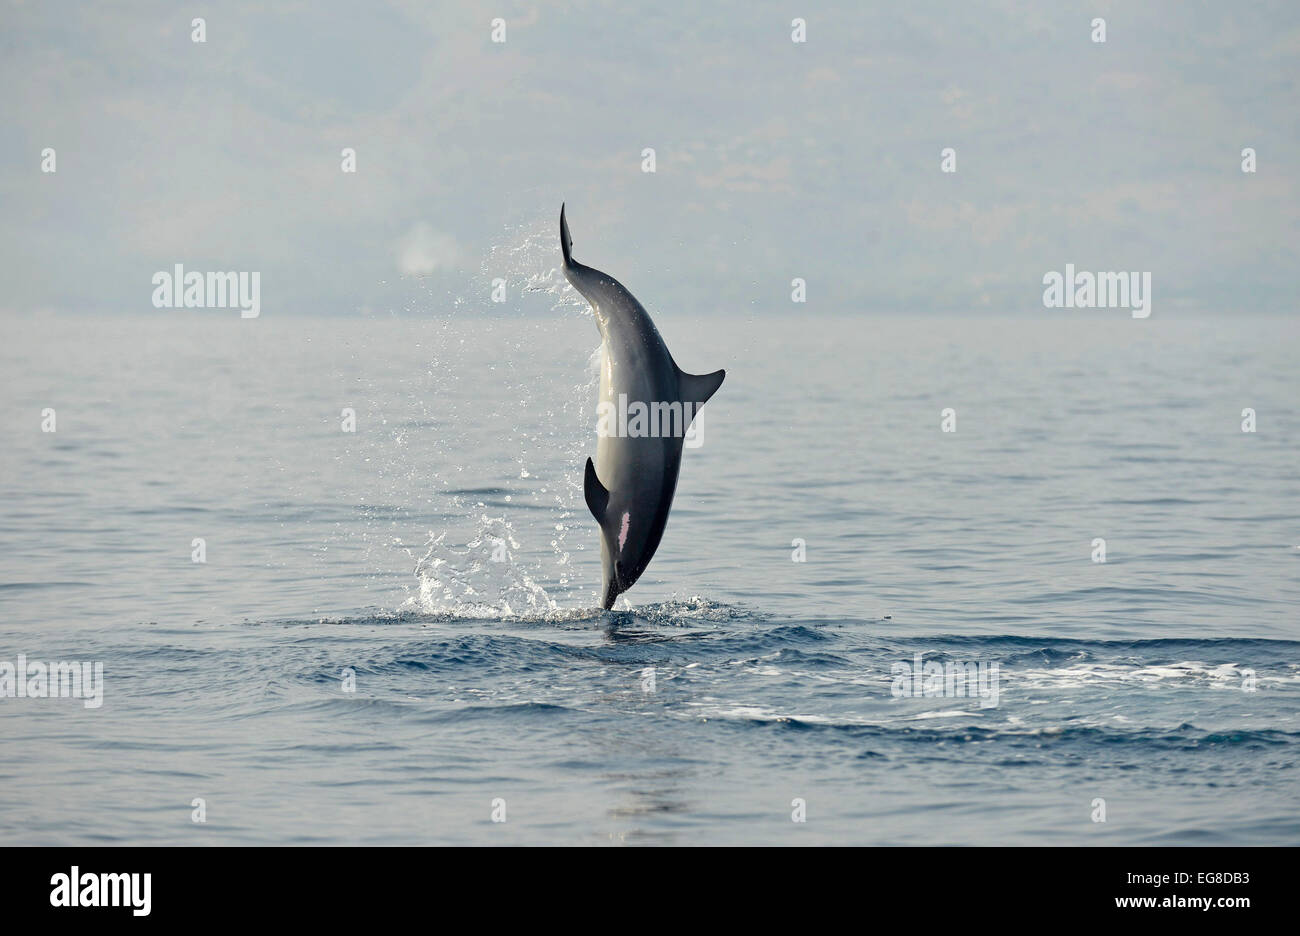 Spinner Dolphin (Stenella longirostris) leaping from the sea, Bali, Indonesia, October - Stock Image